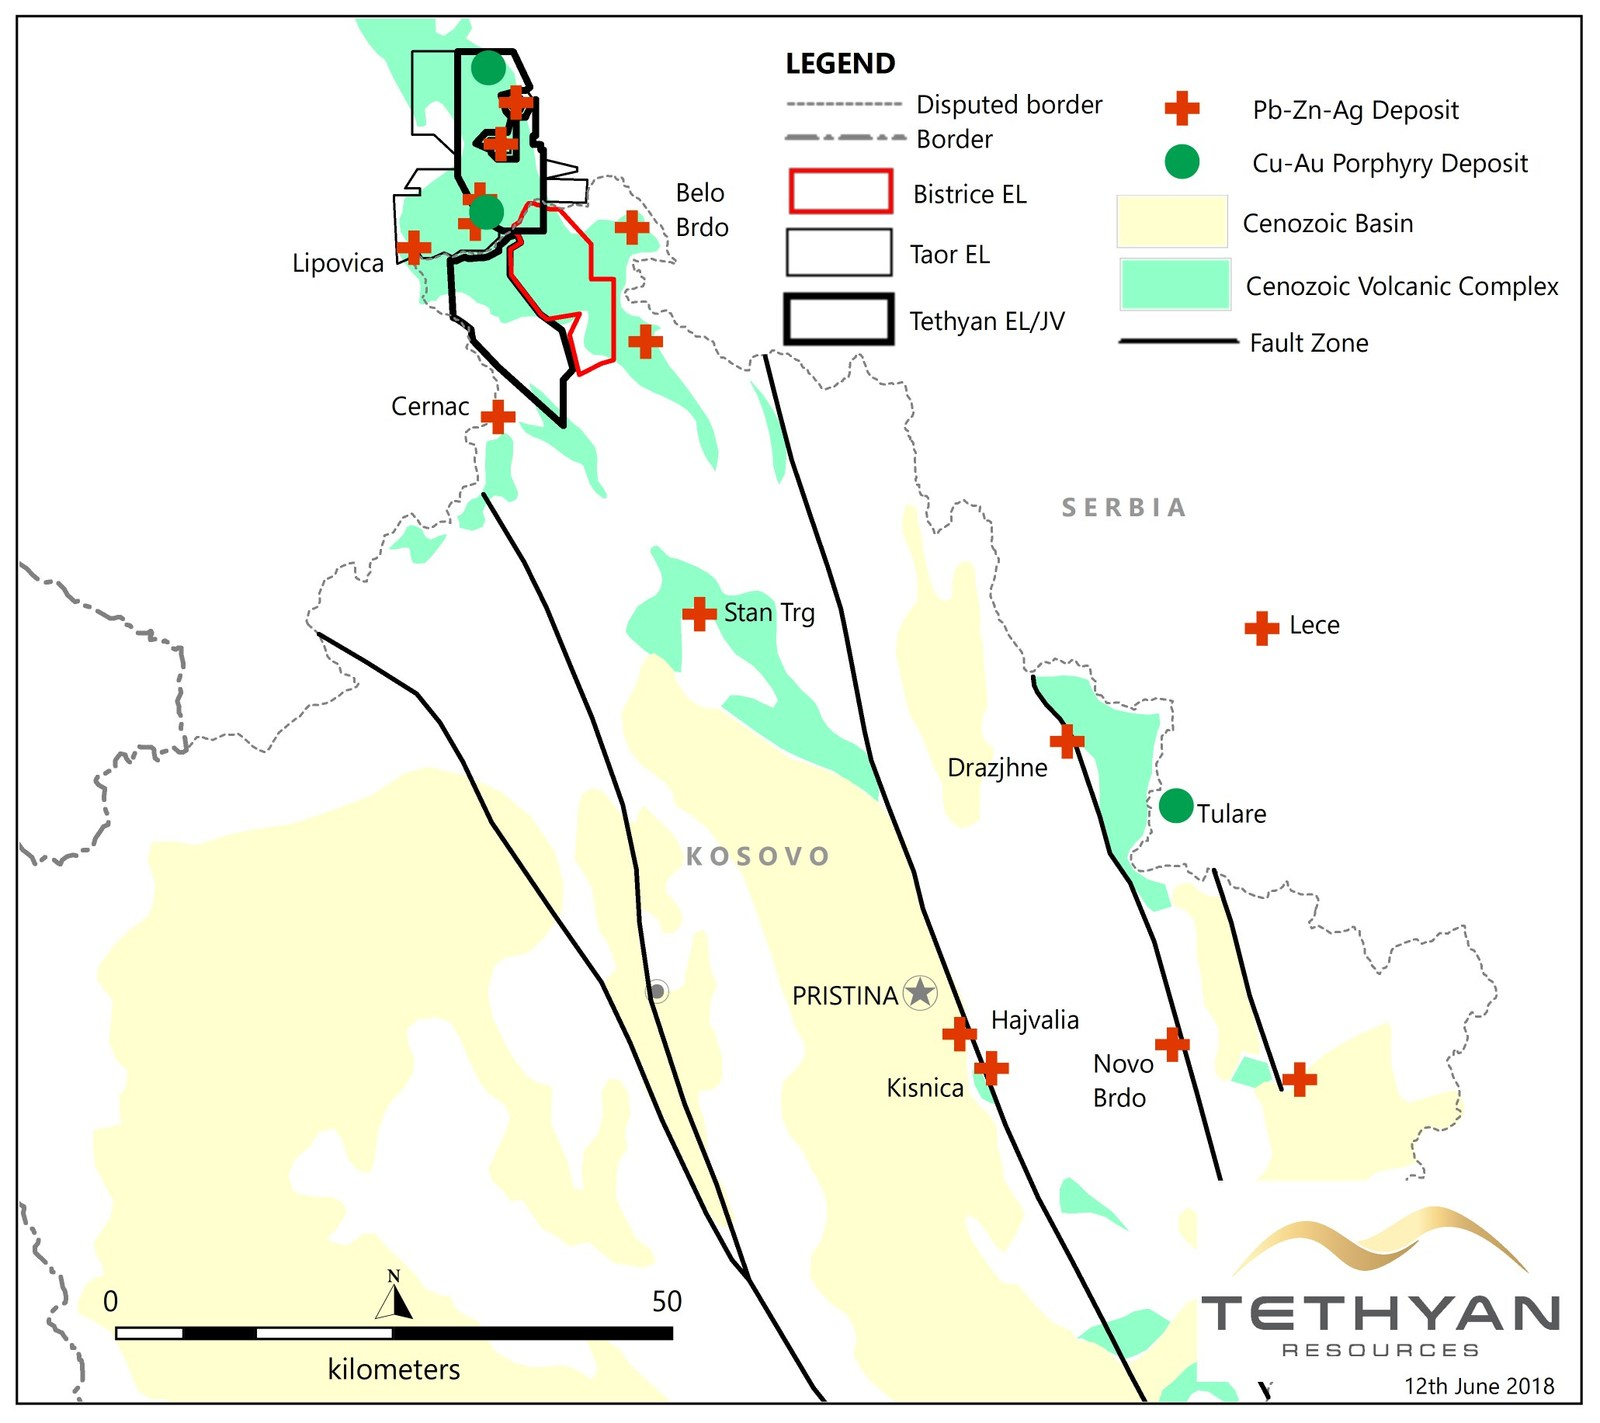 Figure 1: The Bistrice exploration license shown with simplified geology of Kosovo and the mineral deposits of the 'Trepca' mining district. Sources: www.kosovo-mining.org and internal company data.